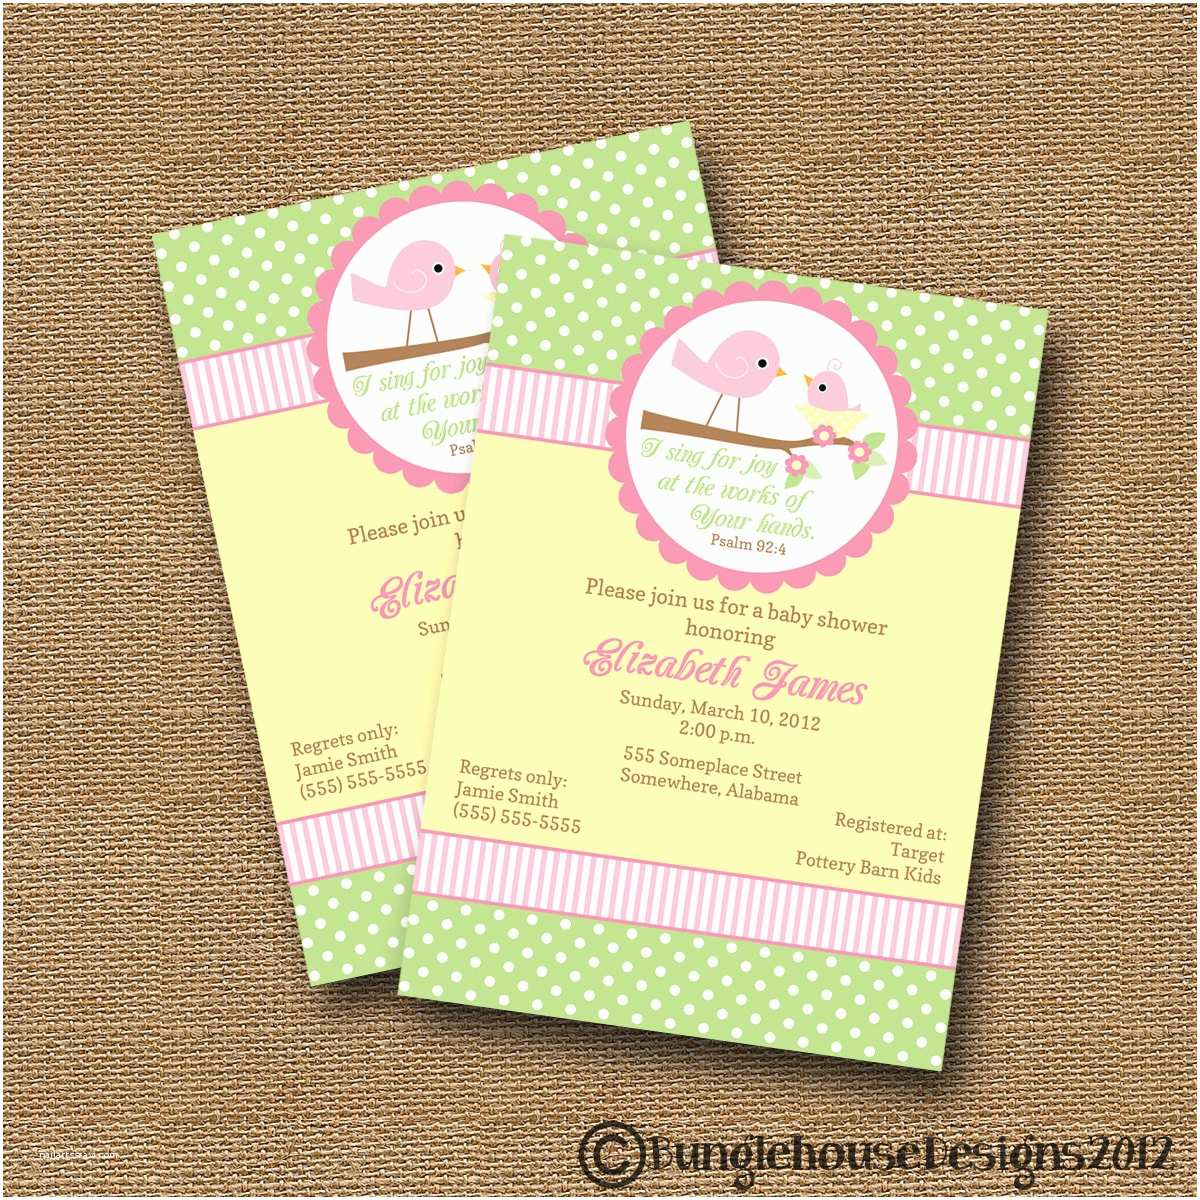 Diy Baby Shower Invitations Bird Baby Shower Invitation Diy Printable Baby Girl Christian